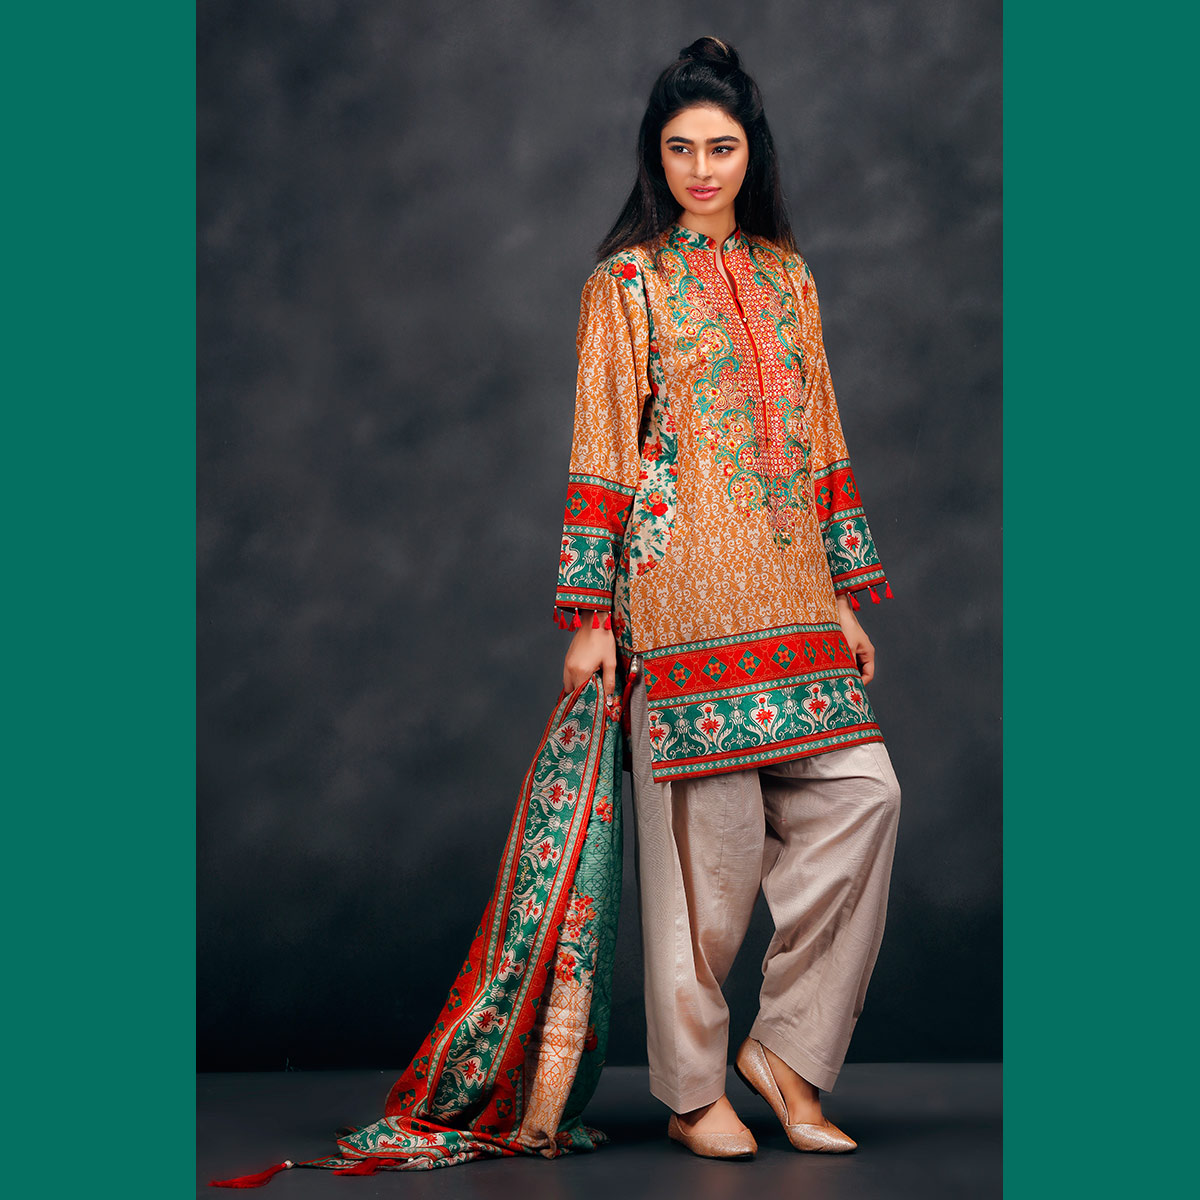 Warda spring summer collection 2016 vol 1 with prices beststylo com - Orange Khaddar Dress For Fall By Warda